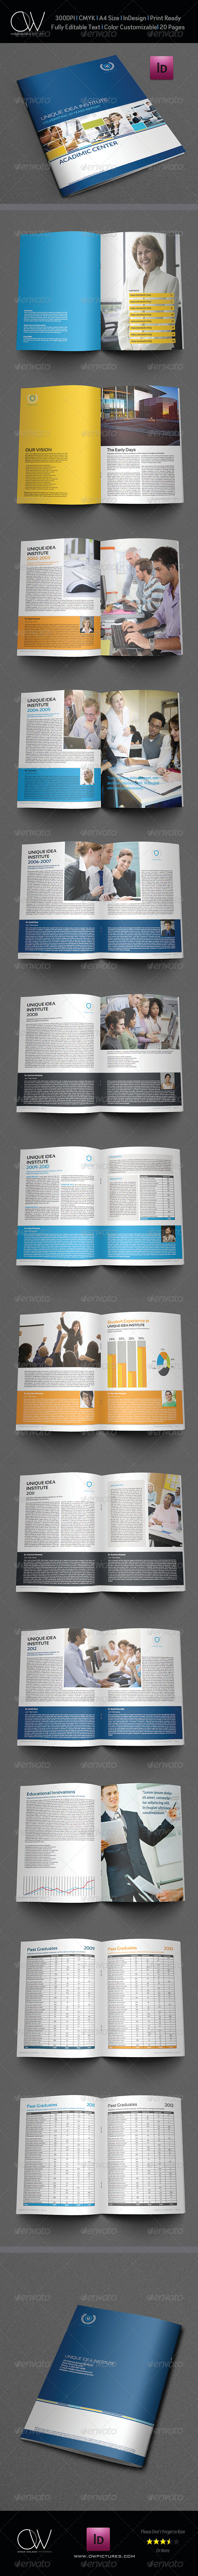 Training Company Brochure Template Pages Train Companies - Brochure template for pages